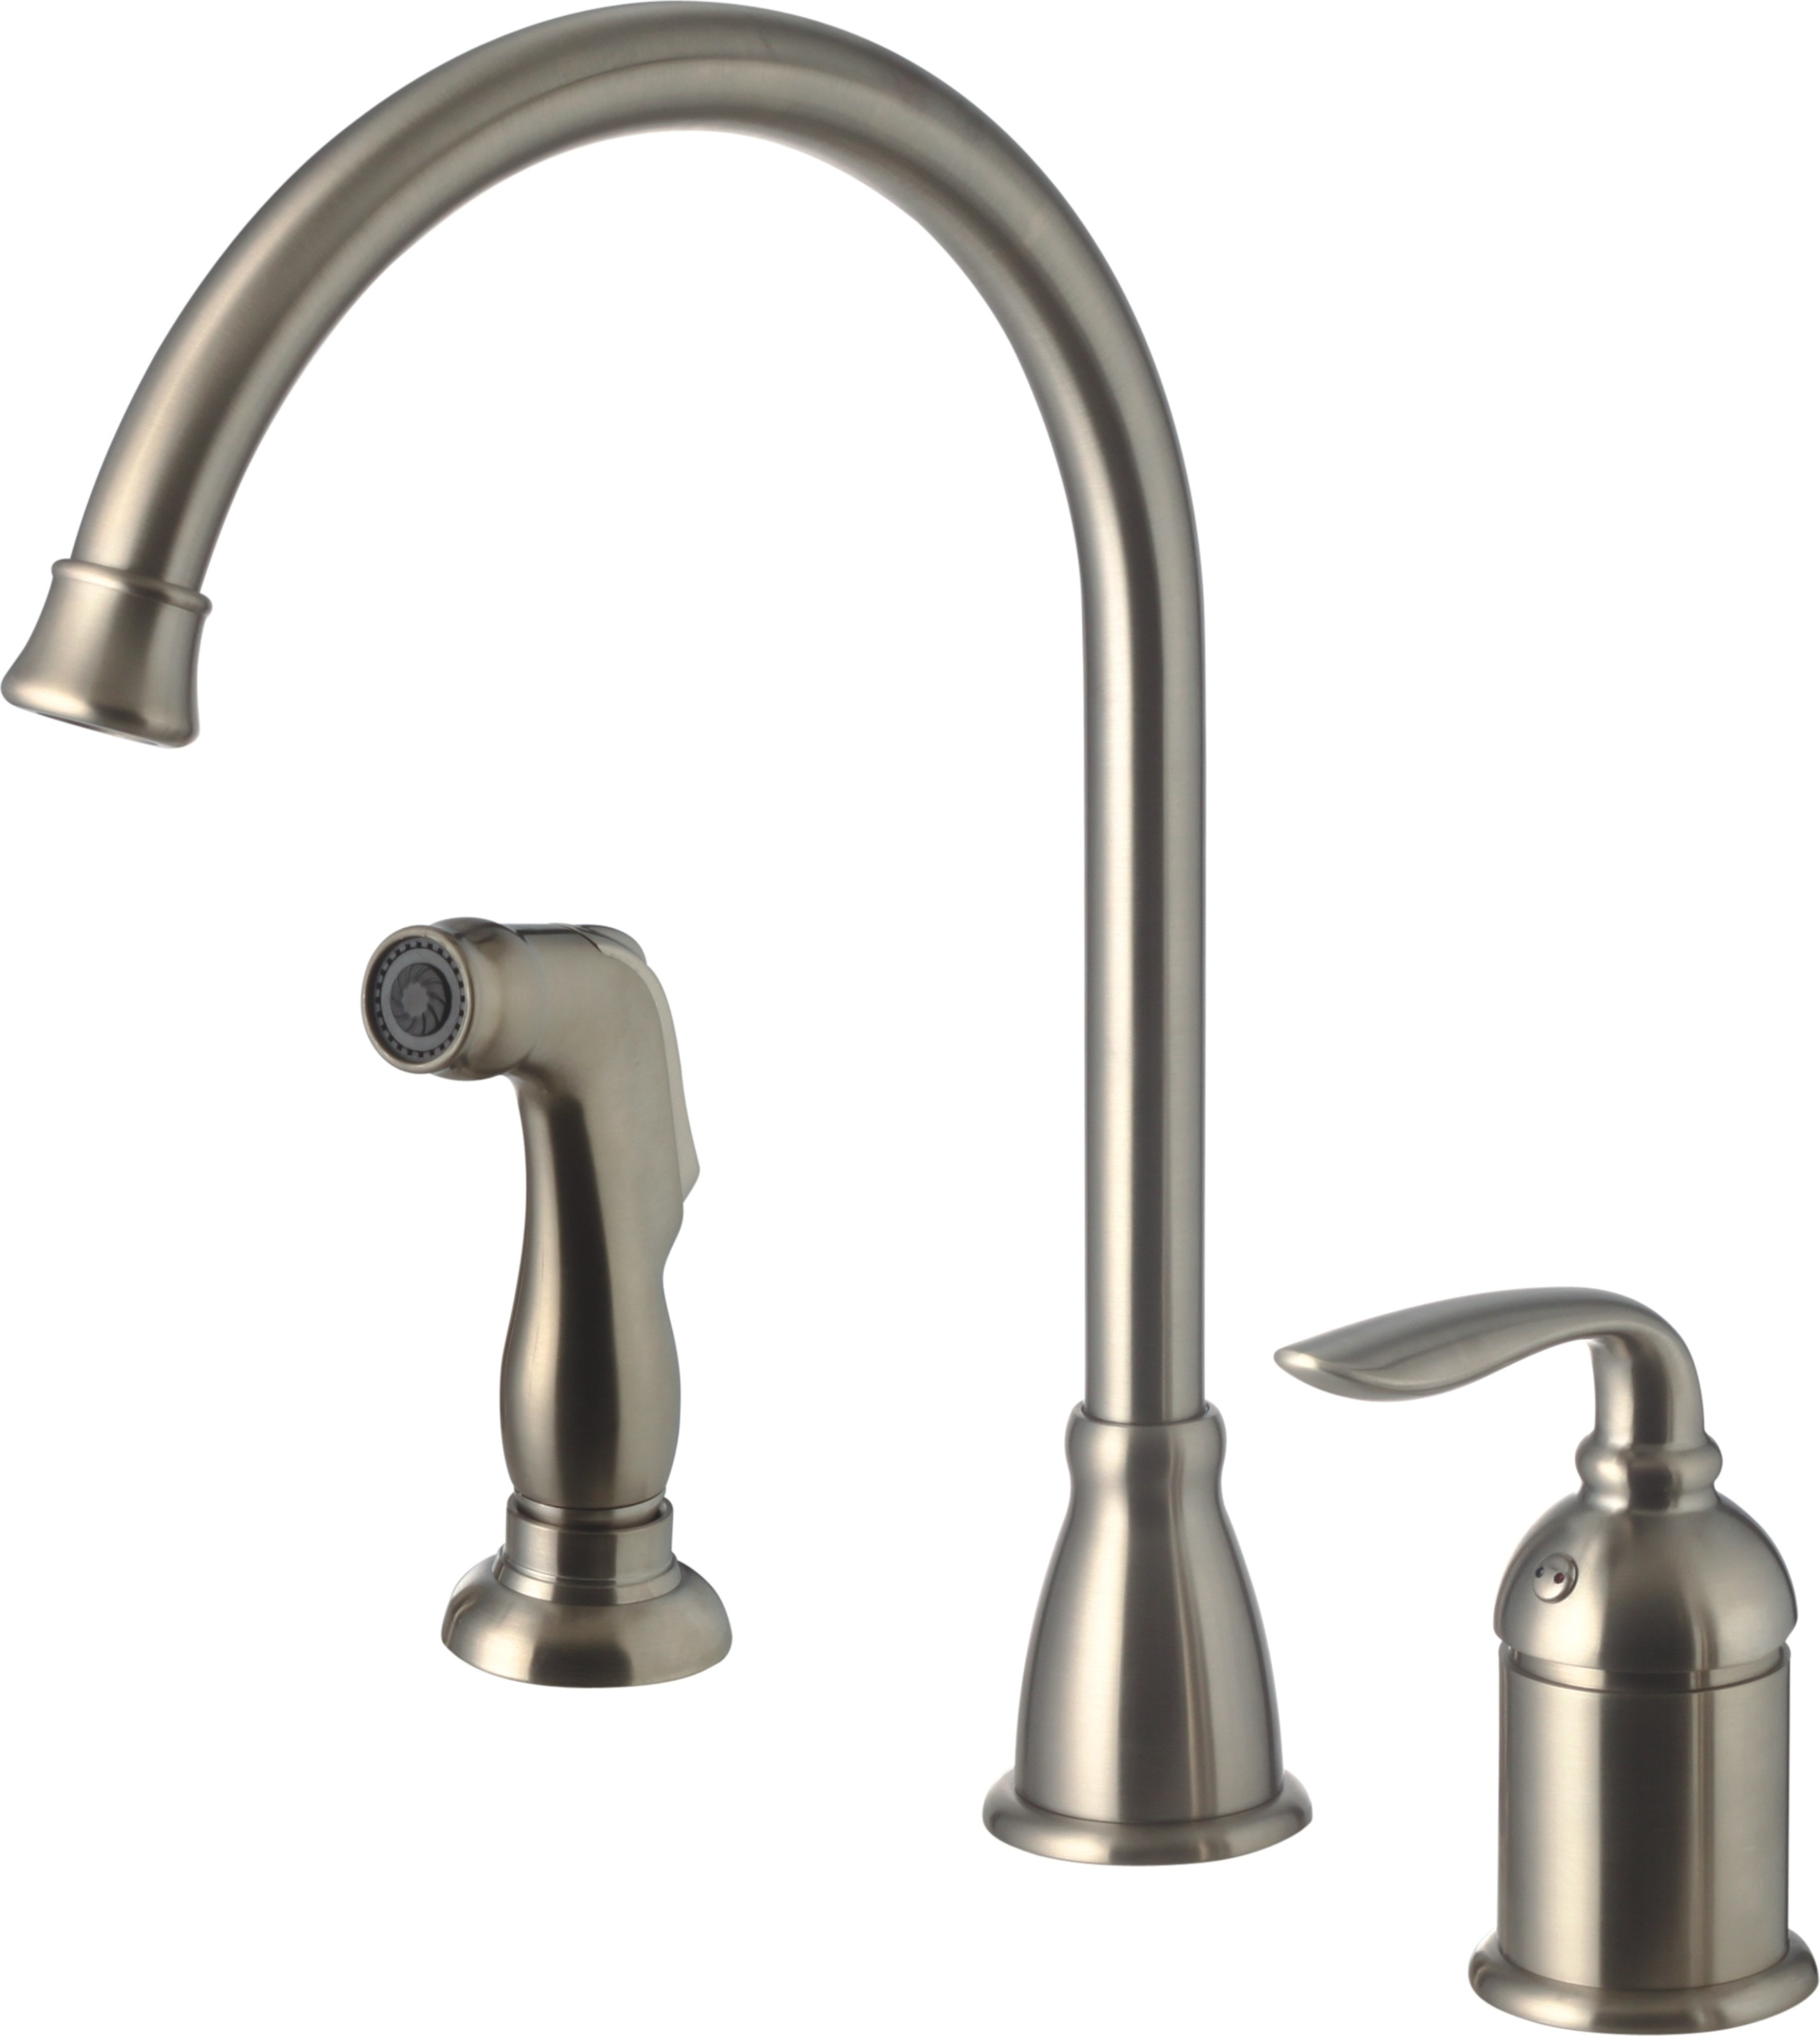 kitchen faucet with side spray rug for single handle brushed